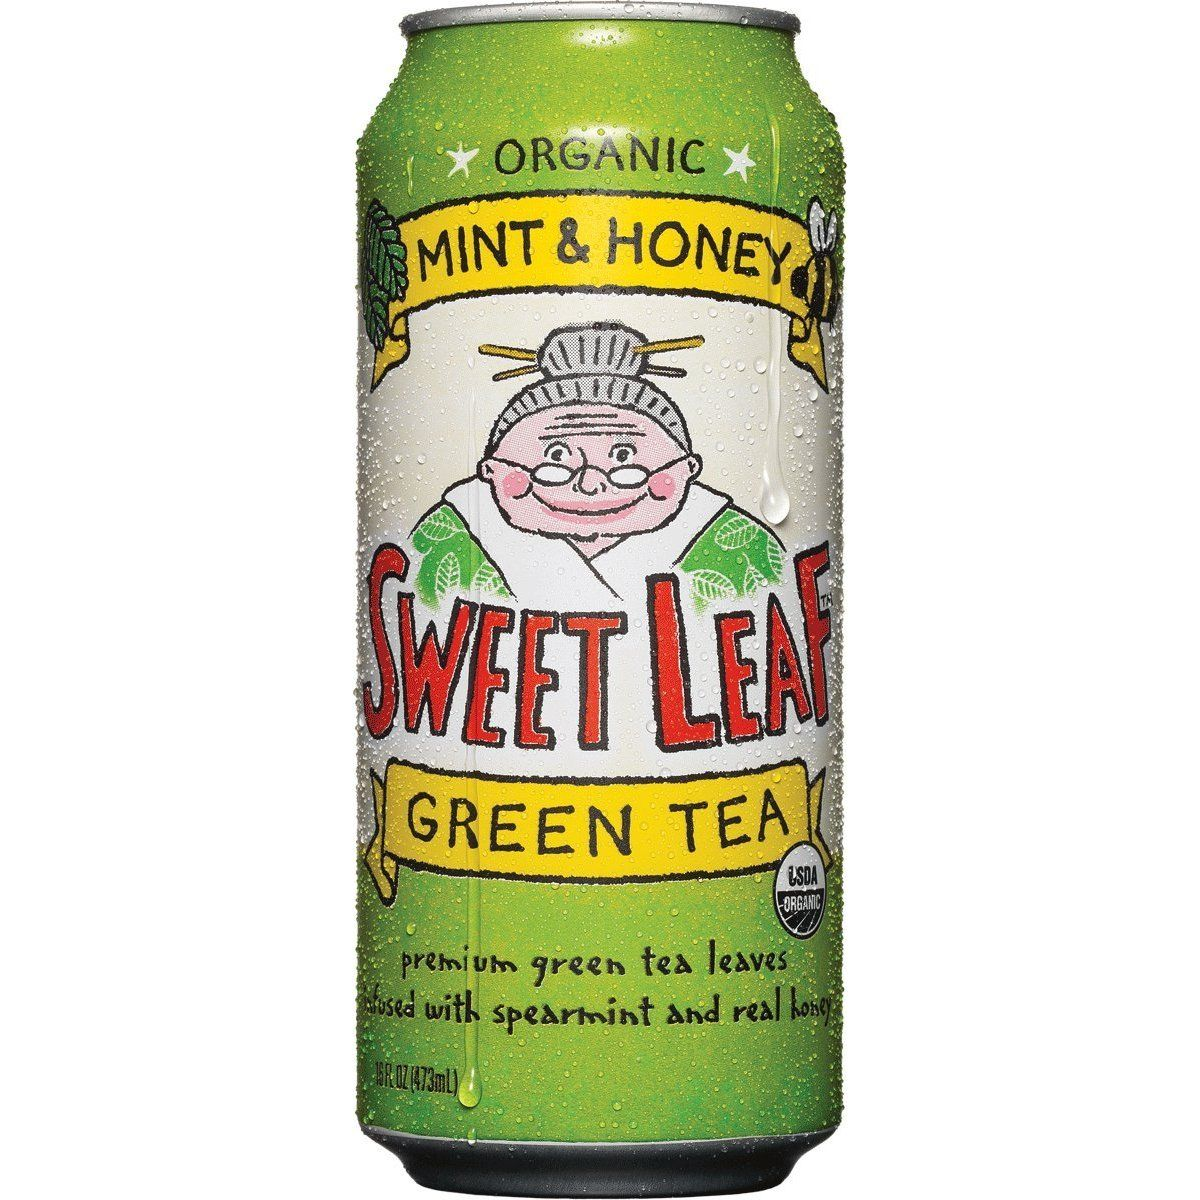 Sweet Leaf Organic Green Tea. Delicious.